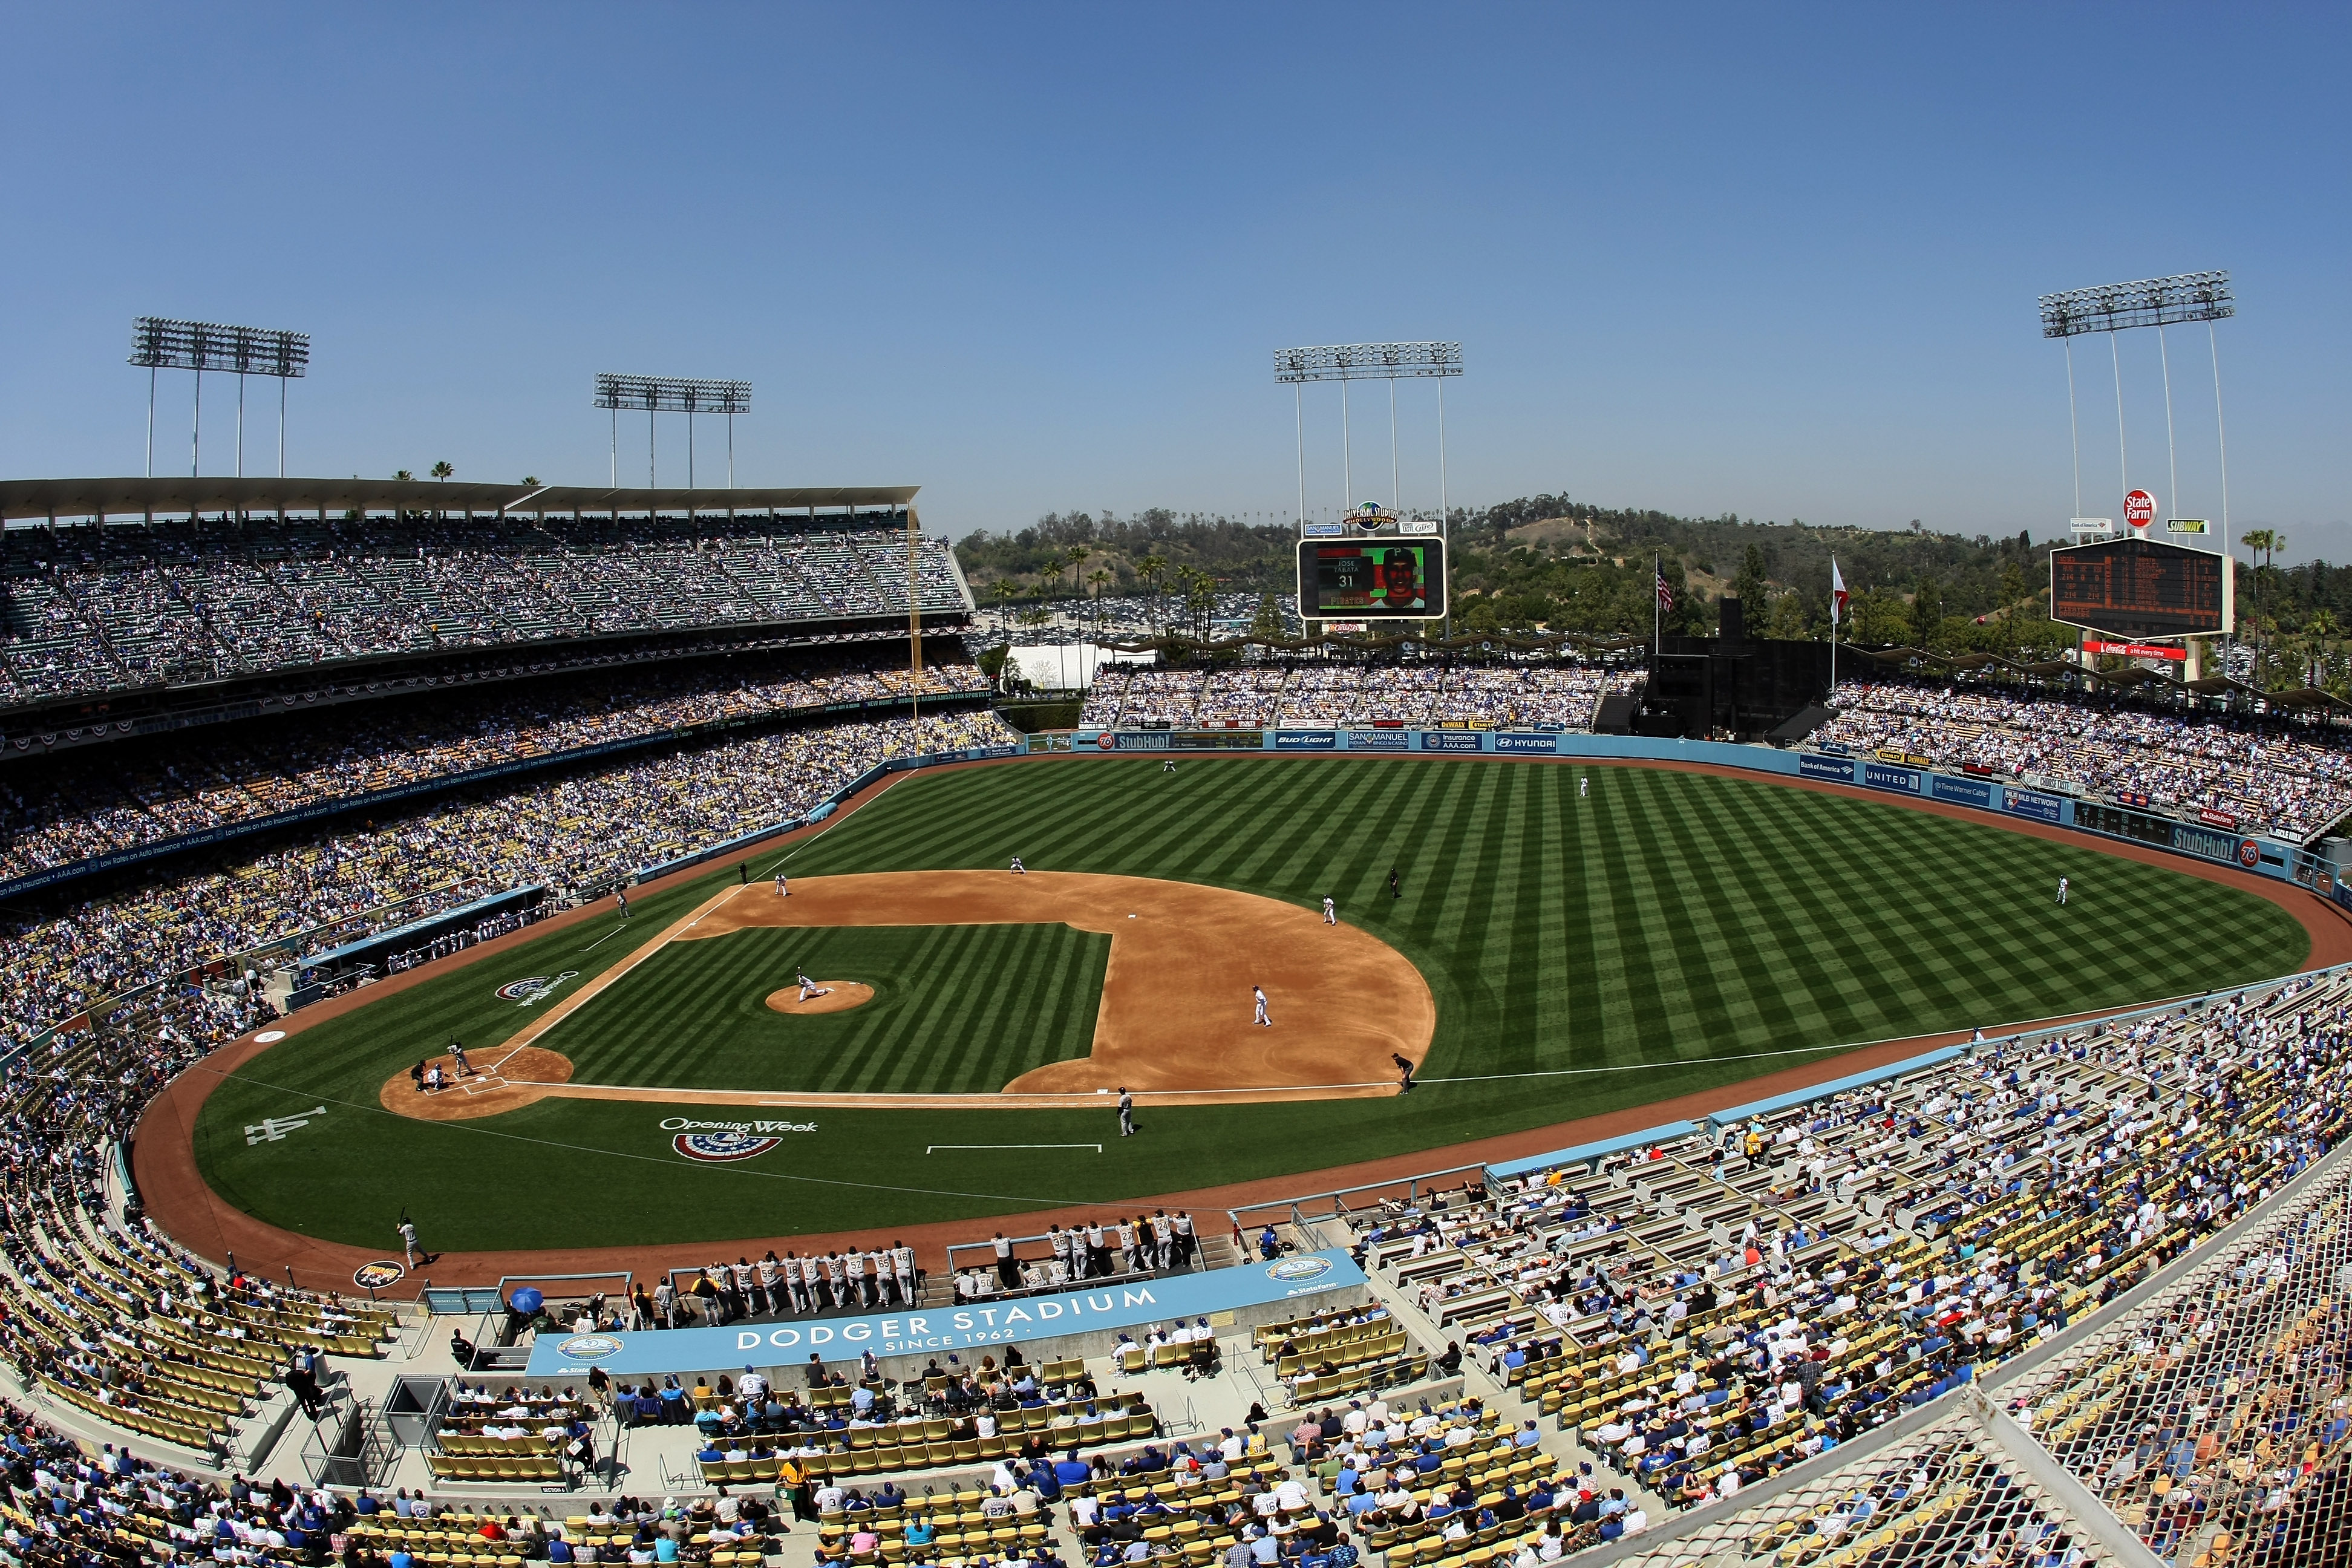 General View of the game between the Pittsburgh Pirates and the Los Angeles Dodgers during opening day at Dodger Stadium